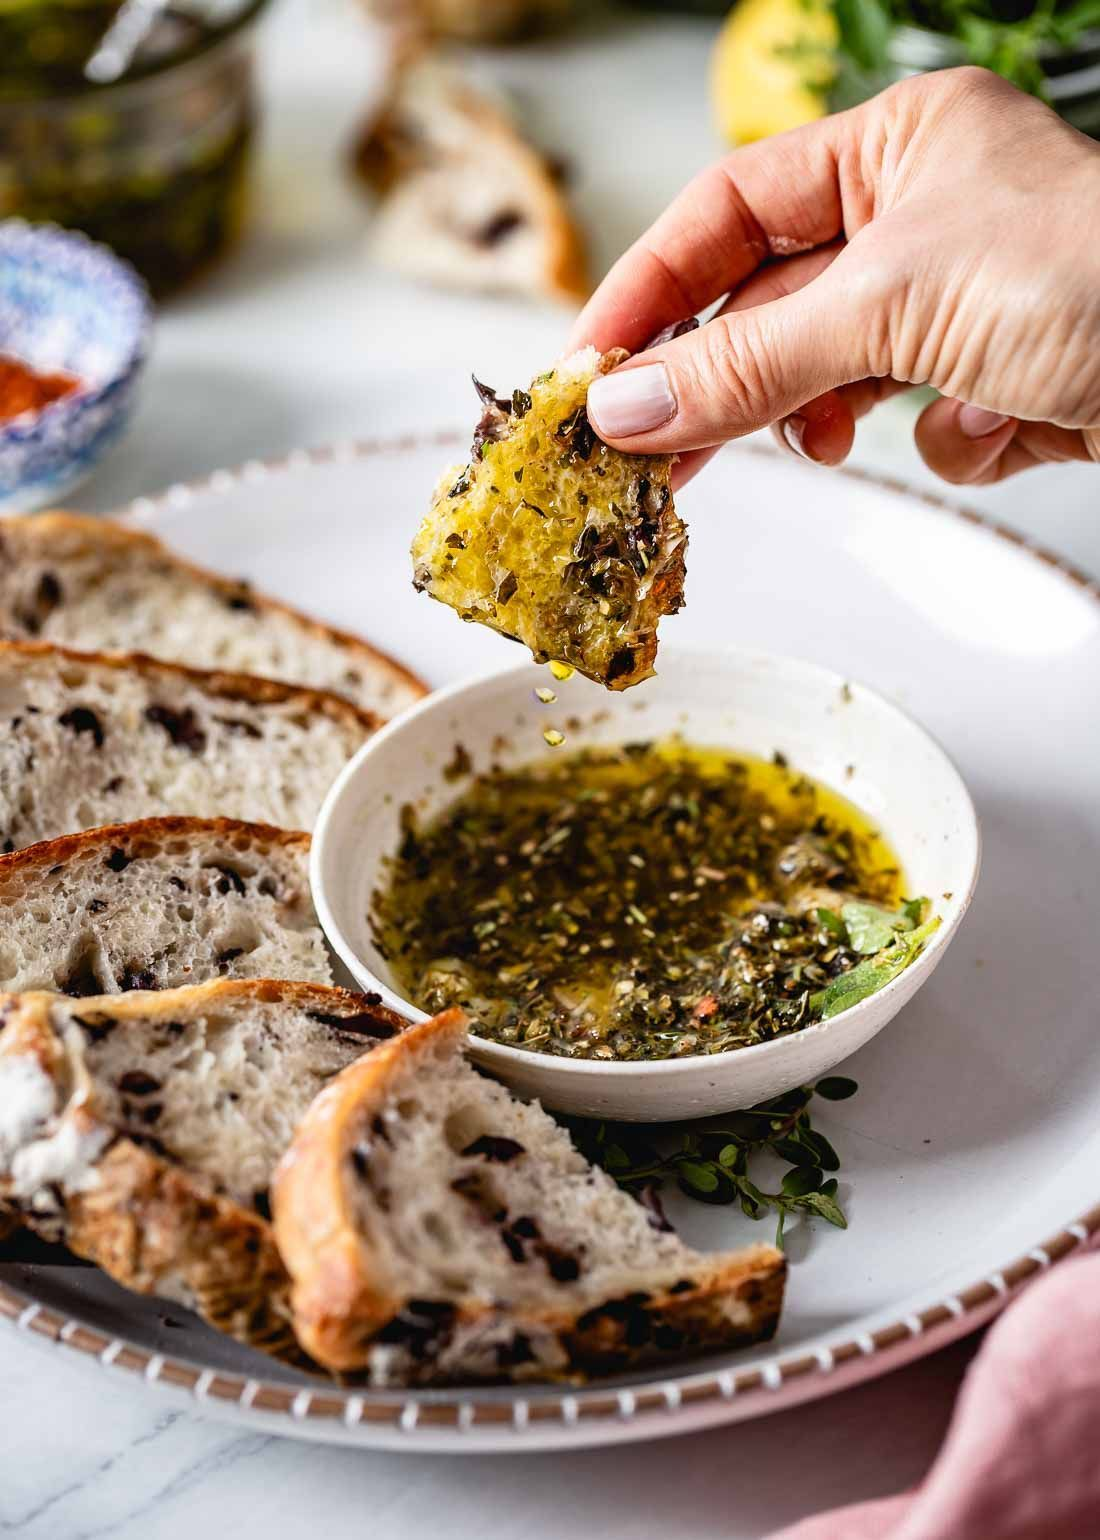 Restaurant Style Olive Oil Bread Dip Recipe (Video!) - Foolproof Living - #bread #foolproof #olive #recipe #restaurant #style #video - #HalloweenRecipesAppetizers